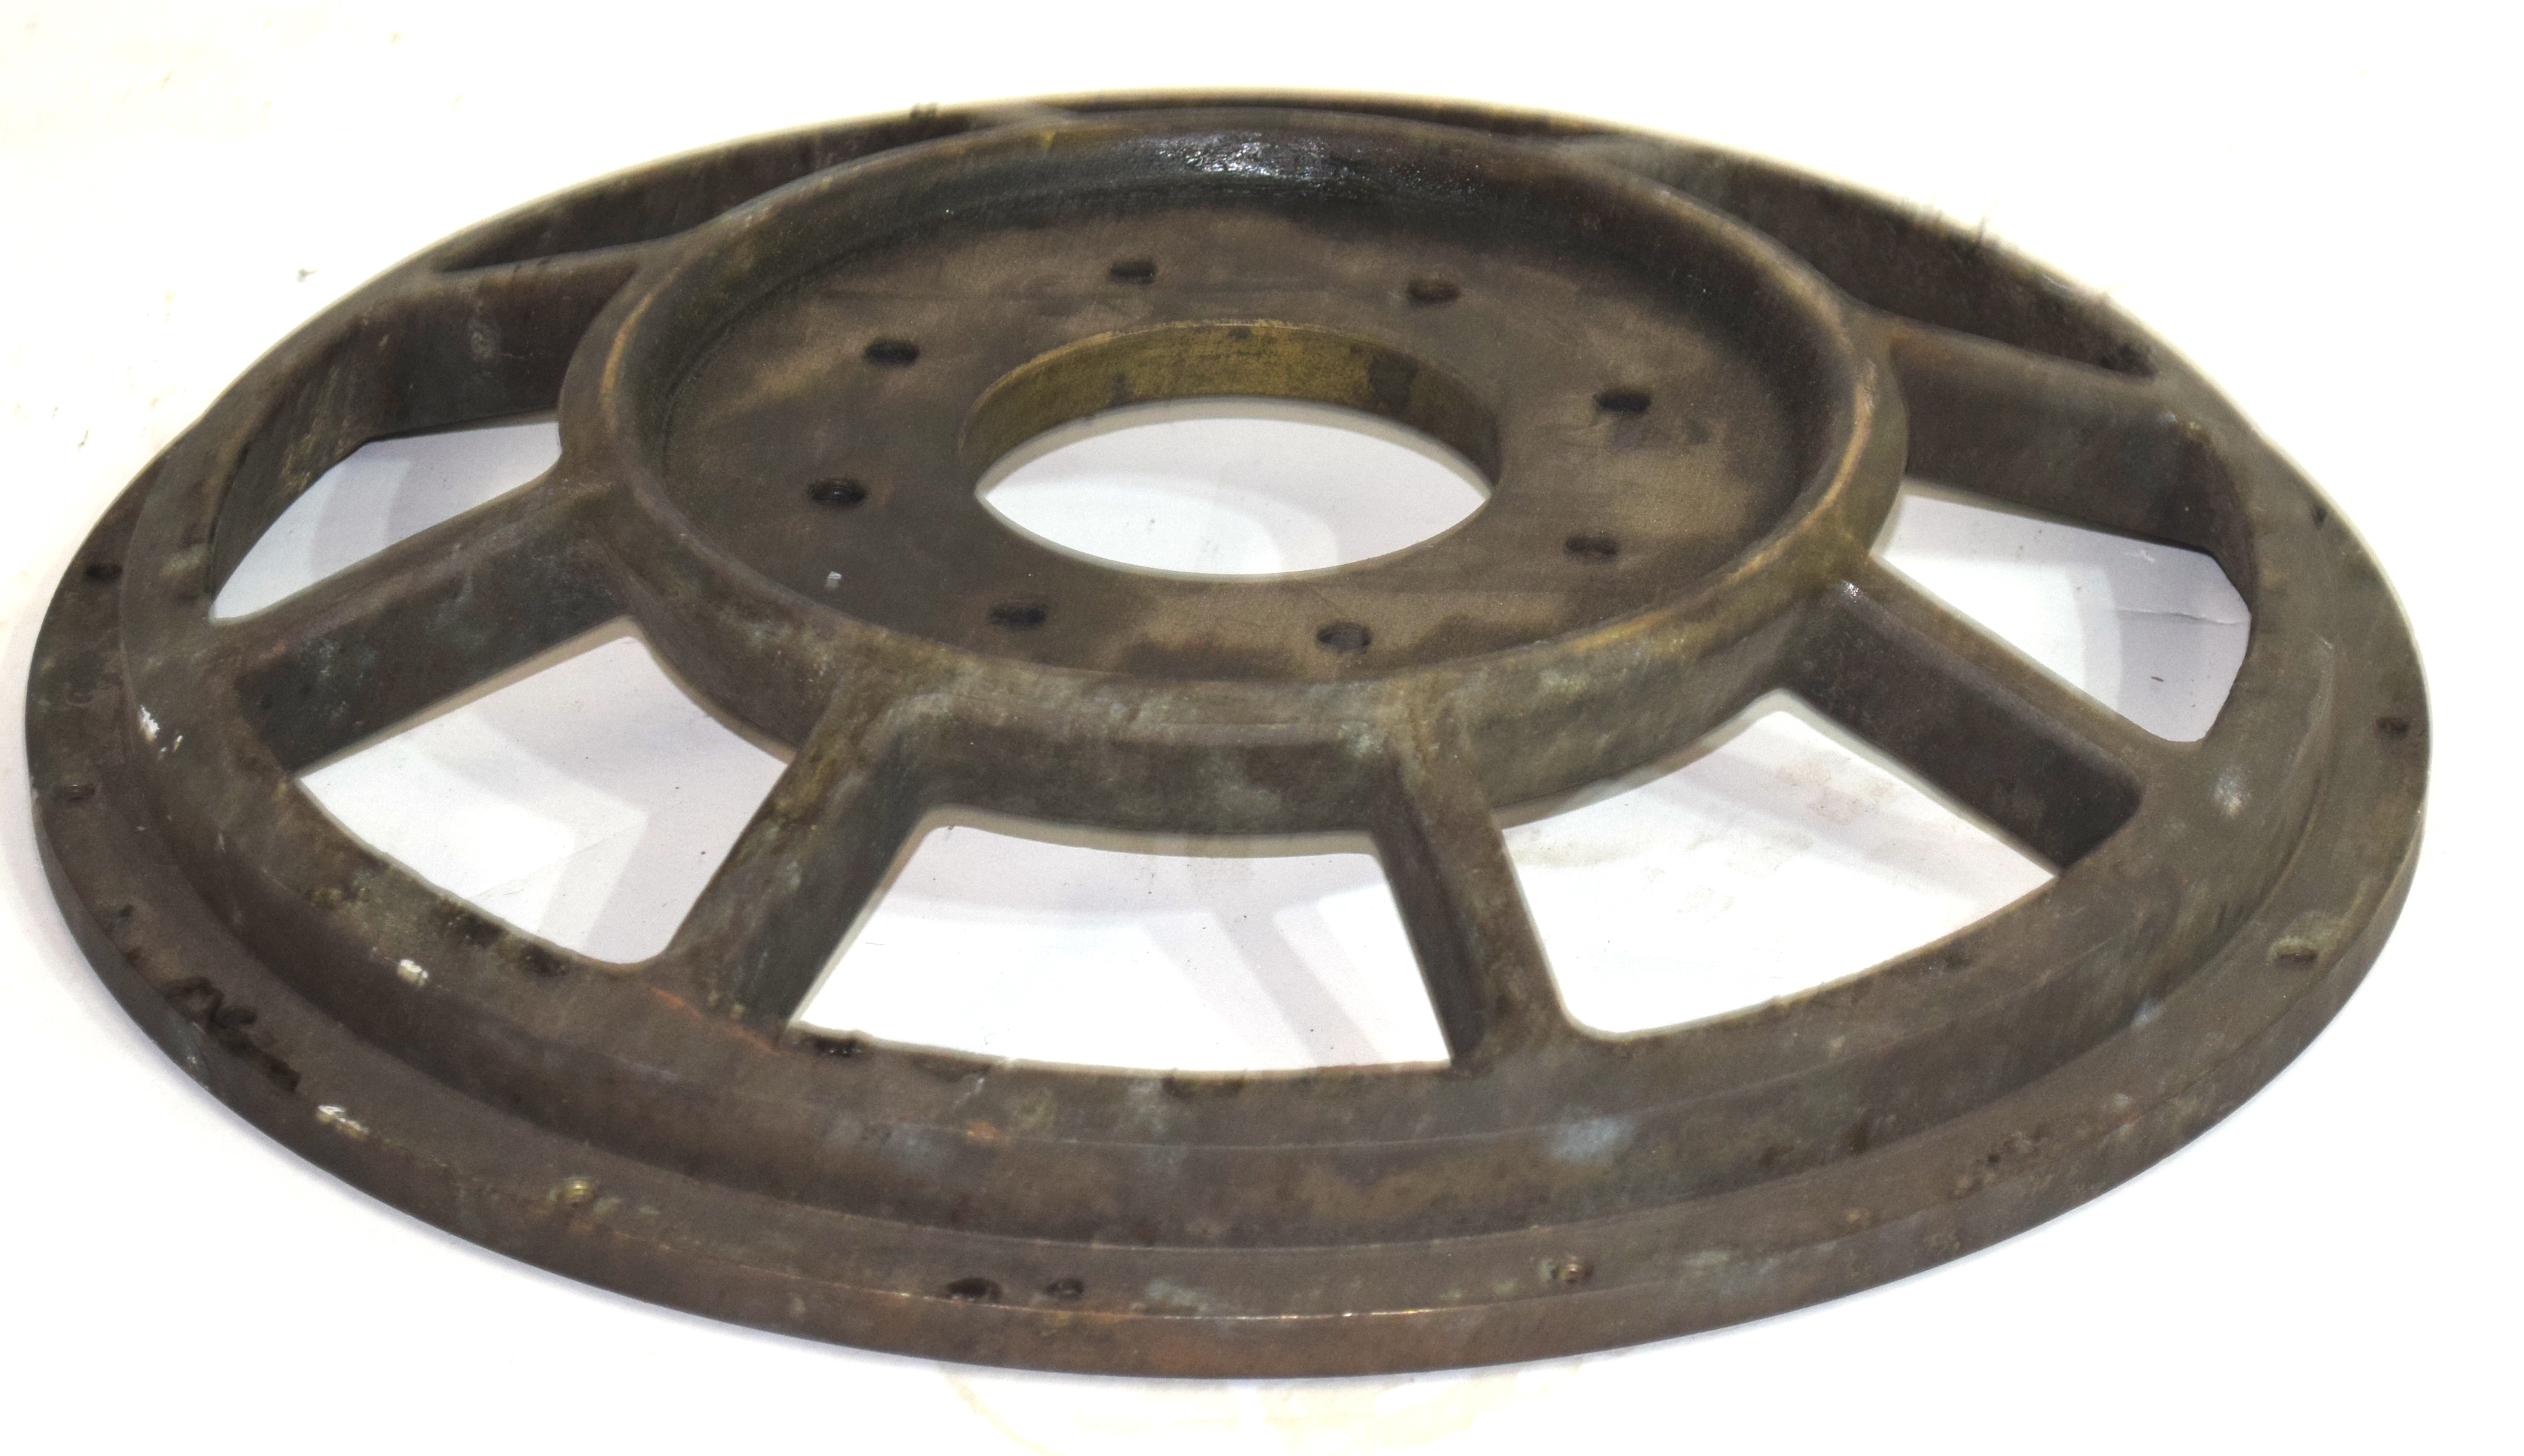 Bronze wheel, diam approx 40cm Condition: Appears to be structurally sound - Image 2 of 2